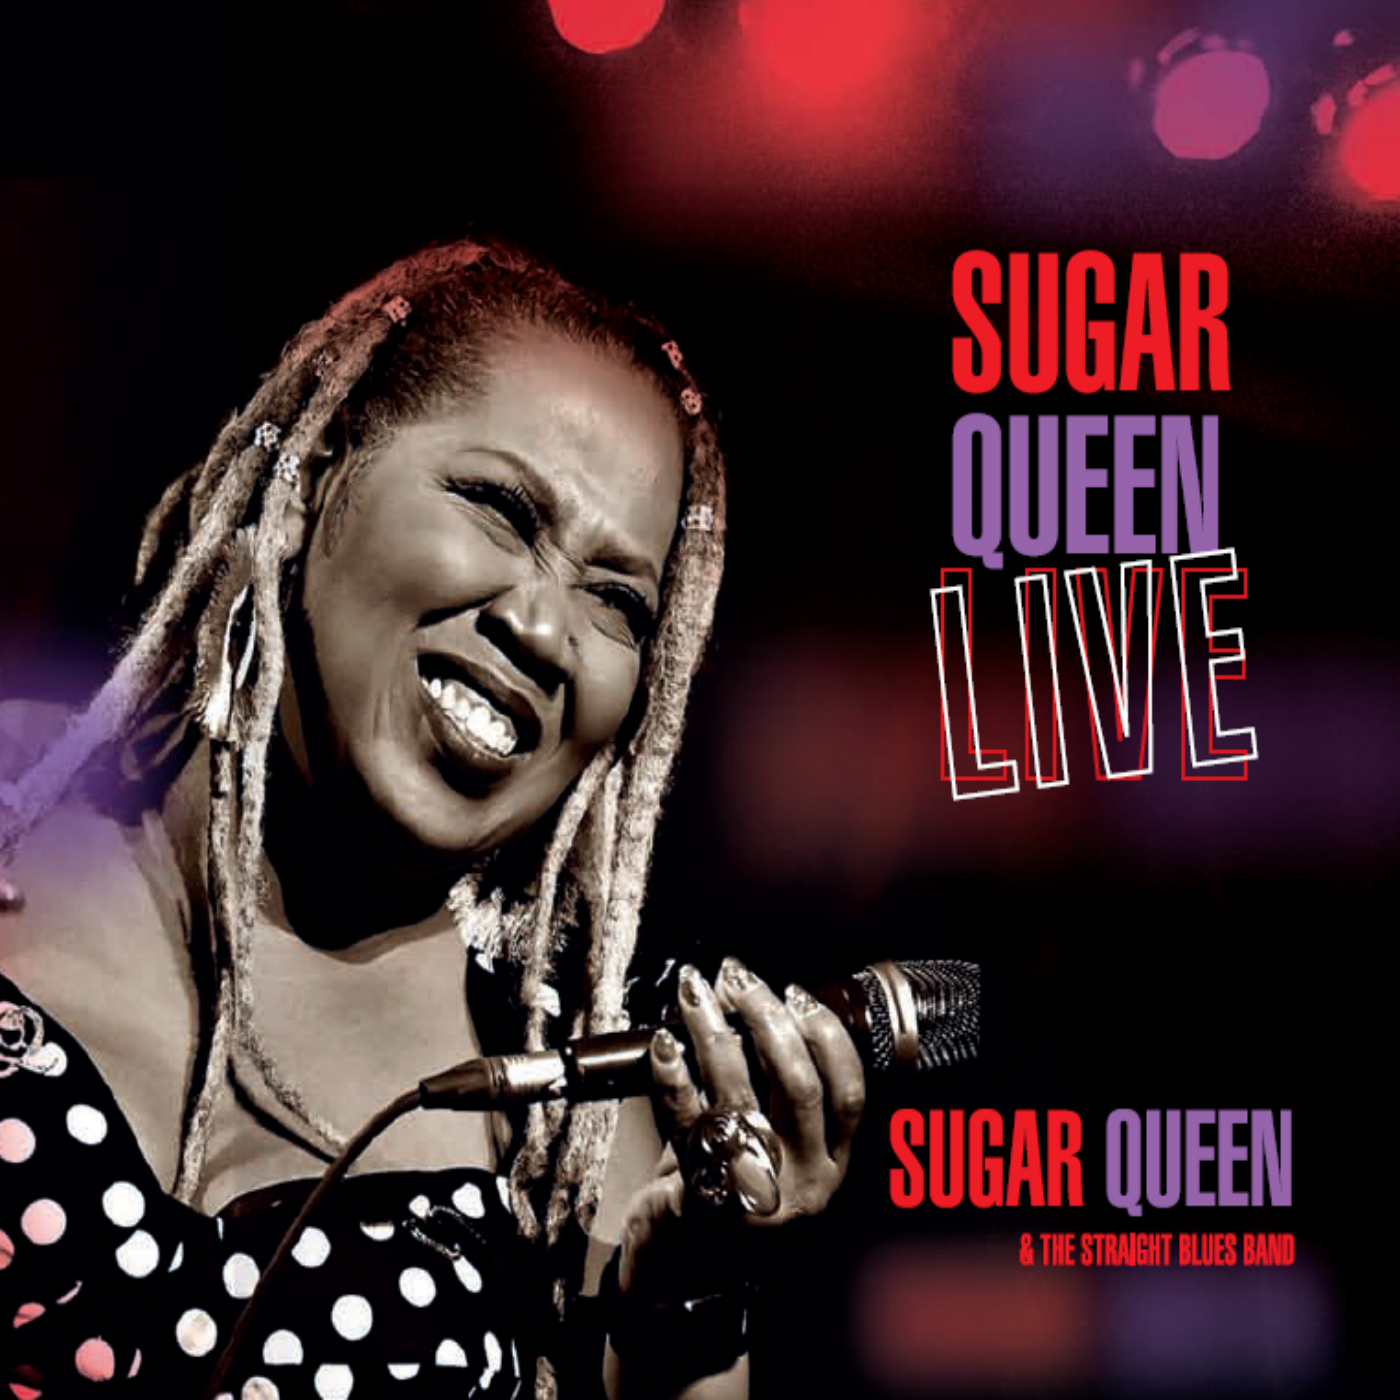 CD-Baby-Cover-Sugar-Queen-LIVE.DPI_300.DPI_1000